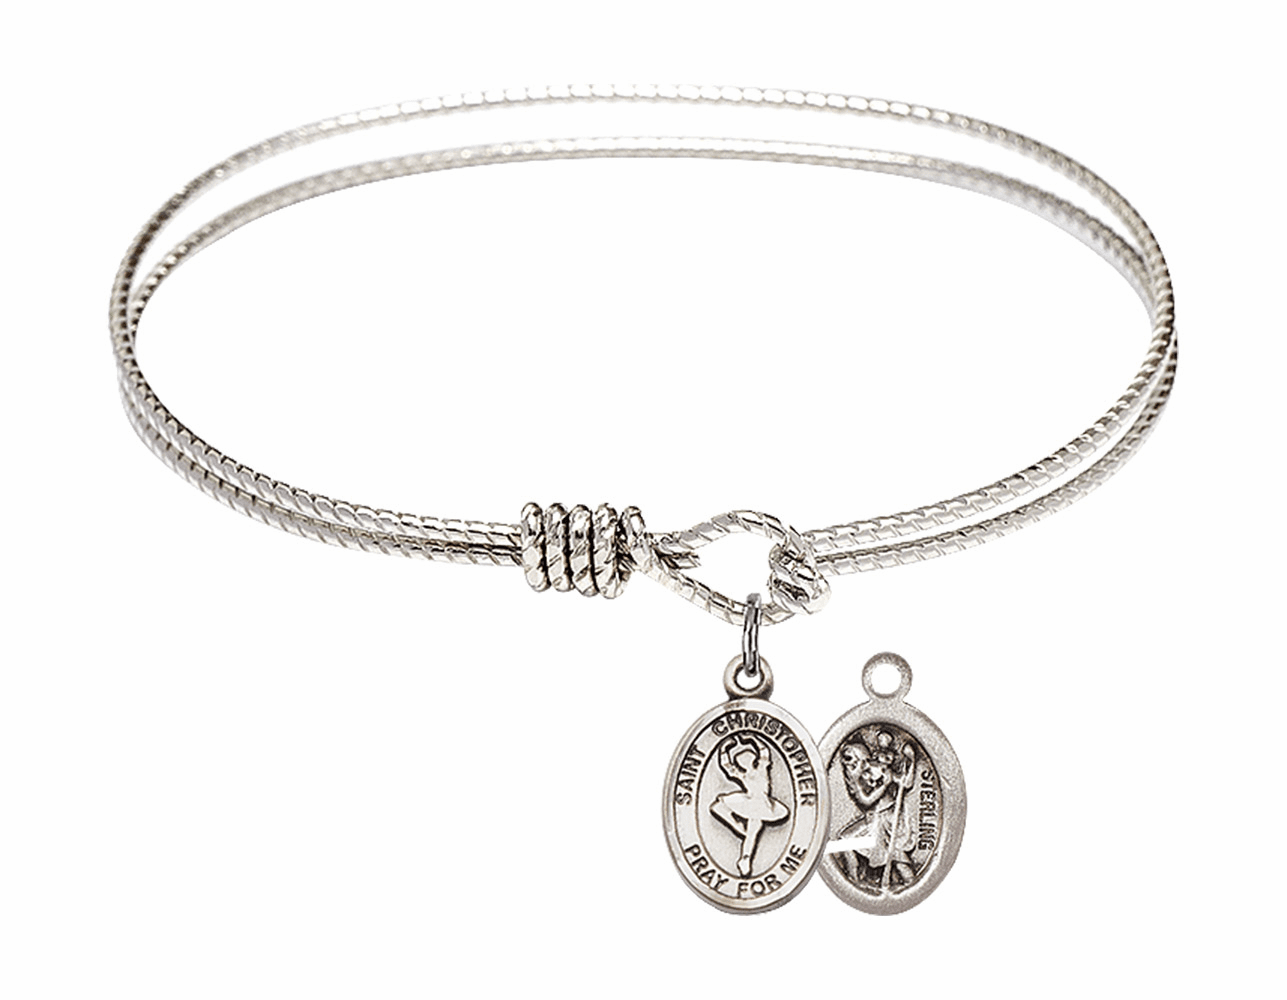 Twist Round Eye Hook St Christopher Dance Bangle Charm Bracelet by Bliss